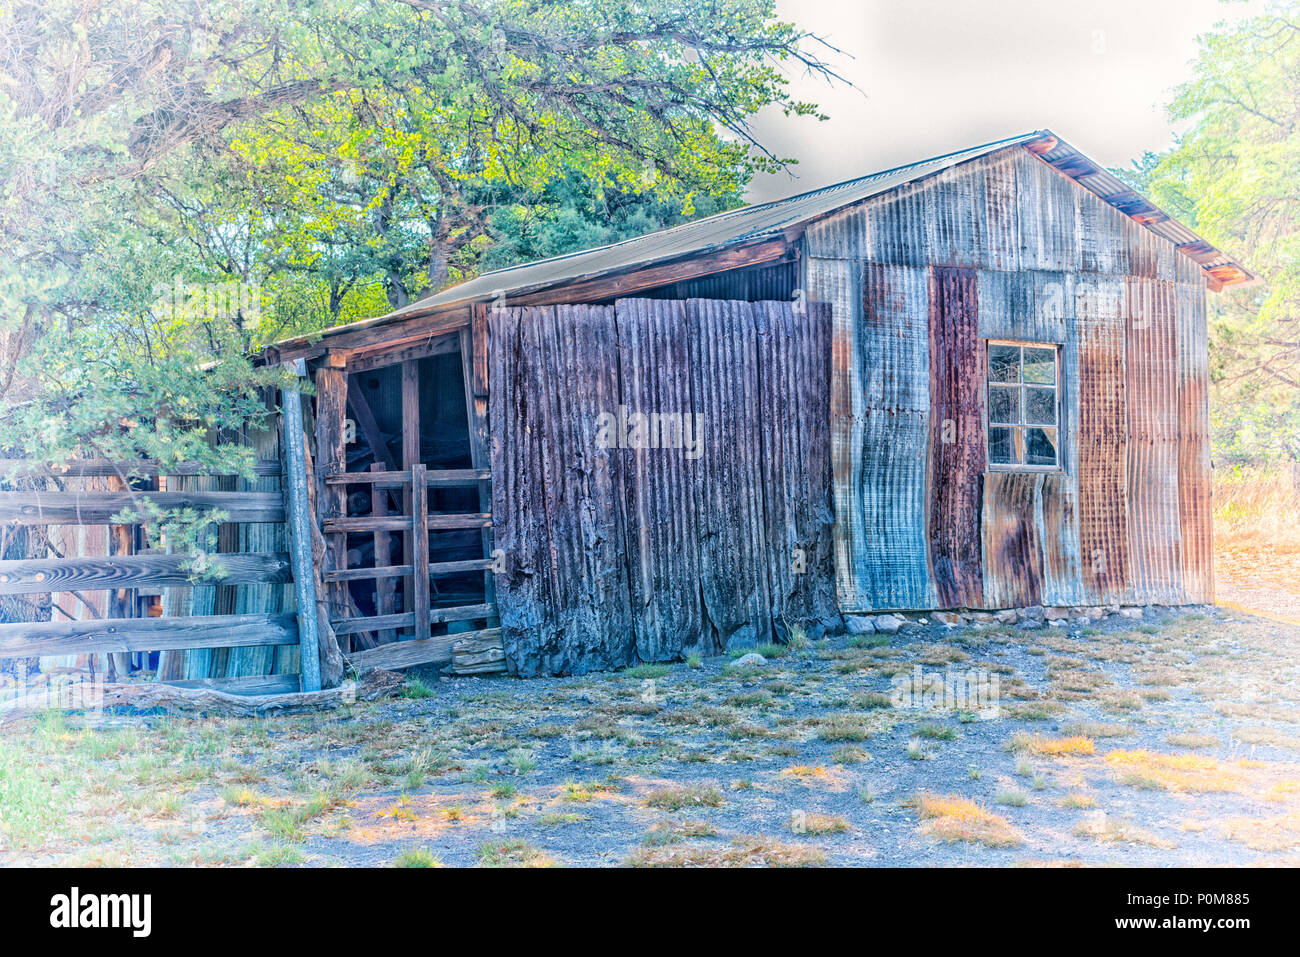 Faraway Ranch at Chiricahua National Monument, Willcox, Arizona. Photo processed with vintage effect. - Stock Image